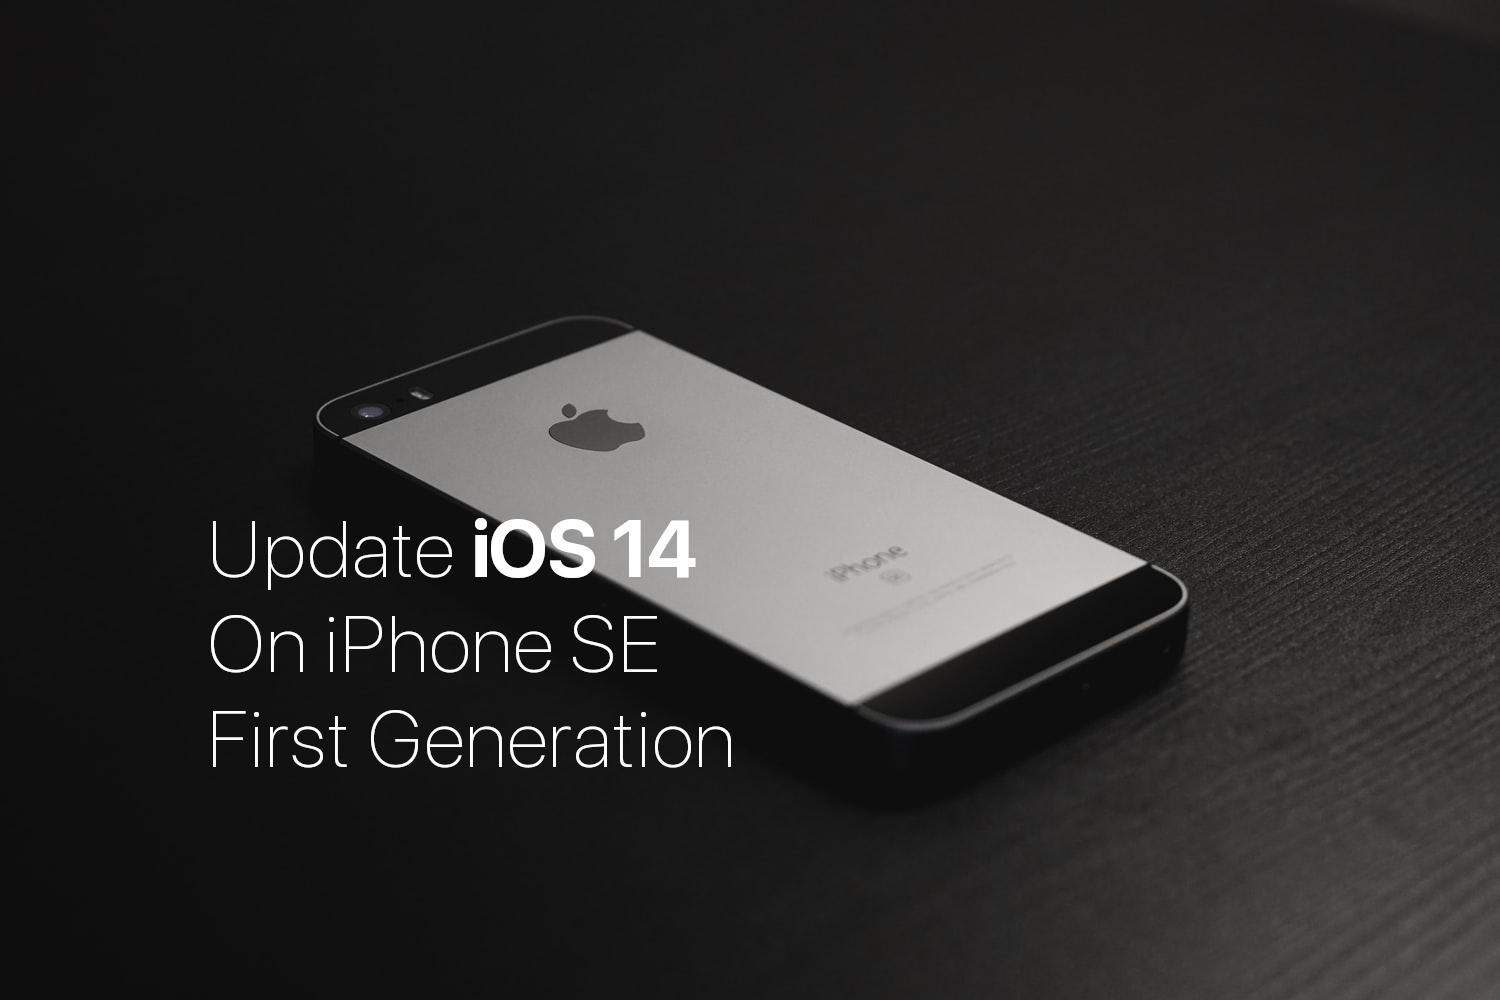 How to Update IOS 14 on iPhone SE First Generation